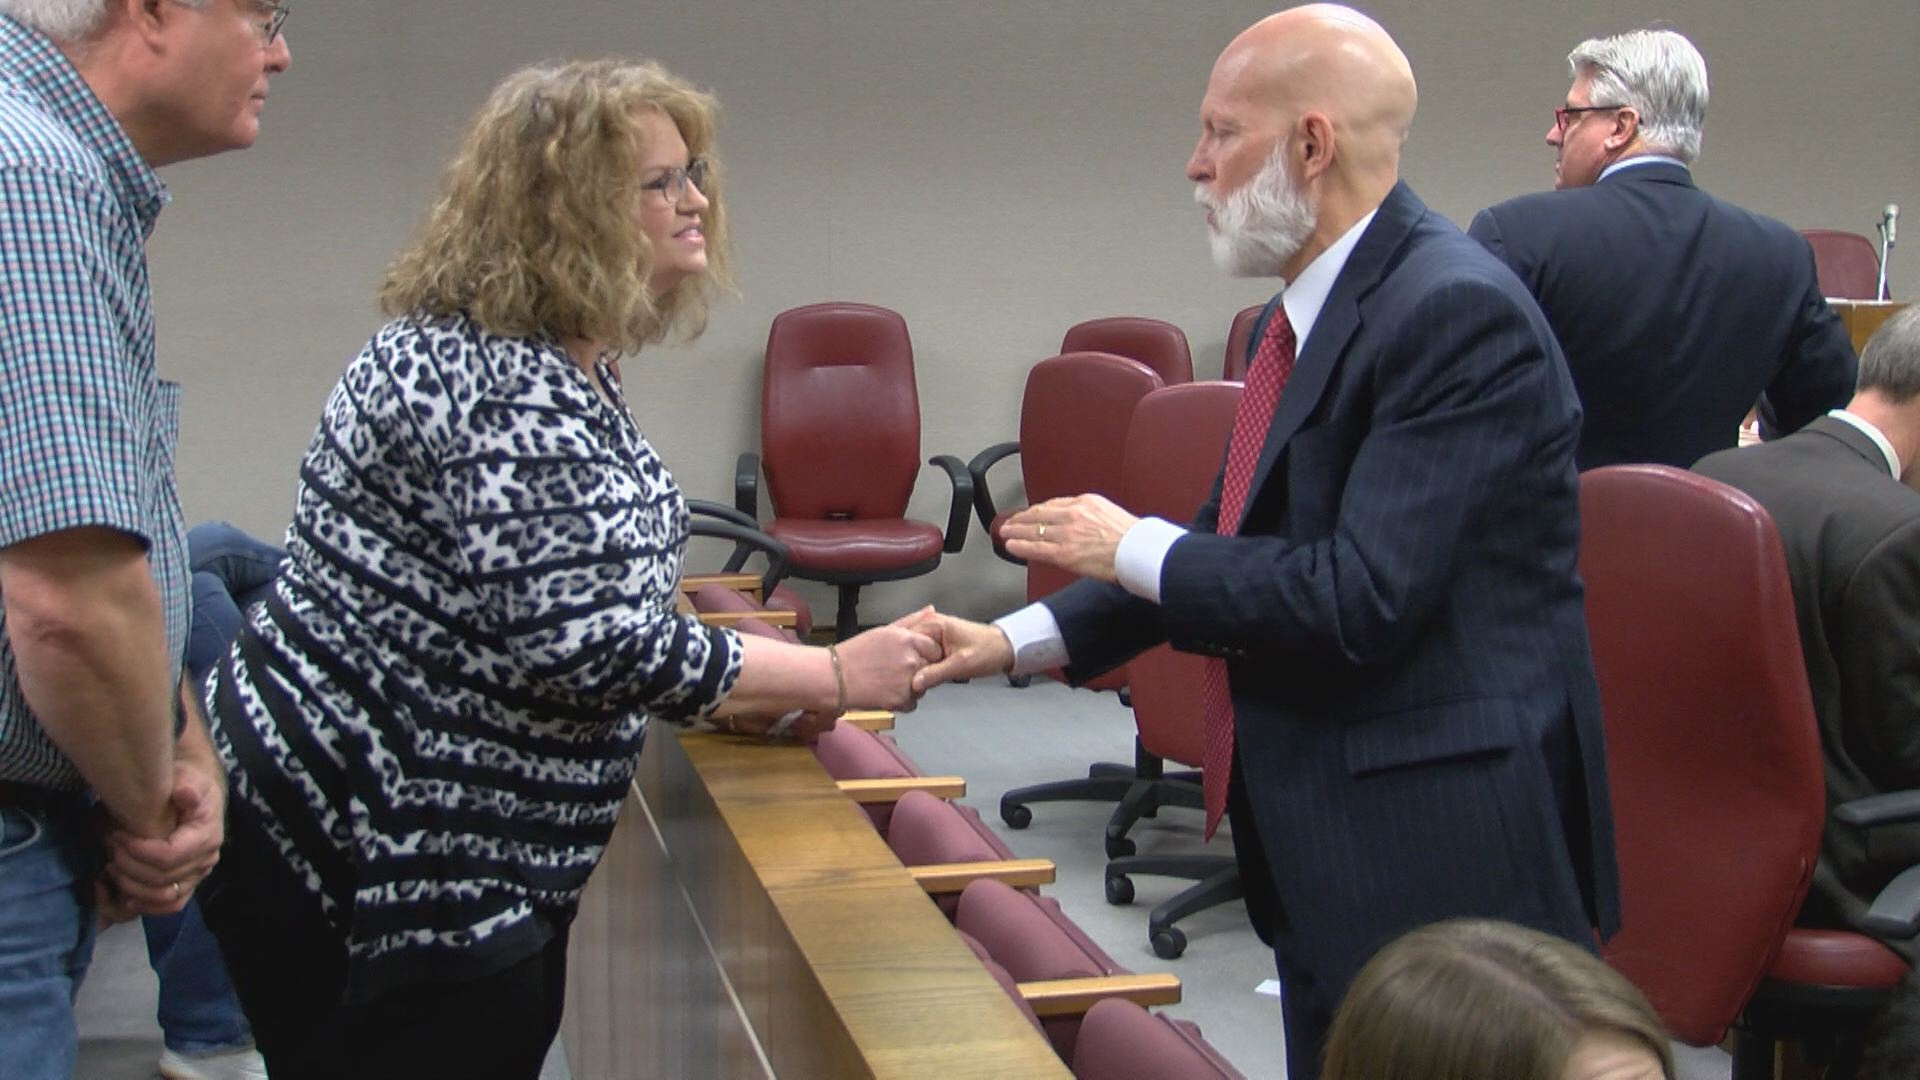 Rebecca Dobbins Bellamy speaks with District Attorney Barry Staubus before the hearing. (Thomas Gray/WCYB)